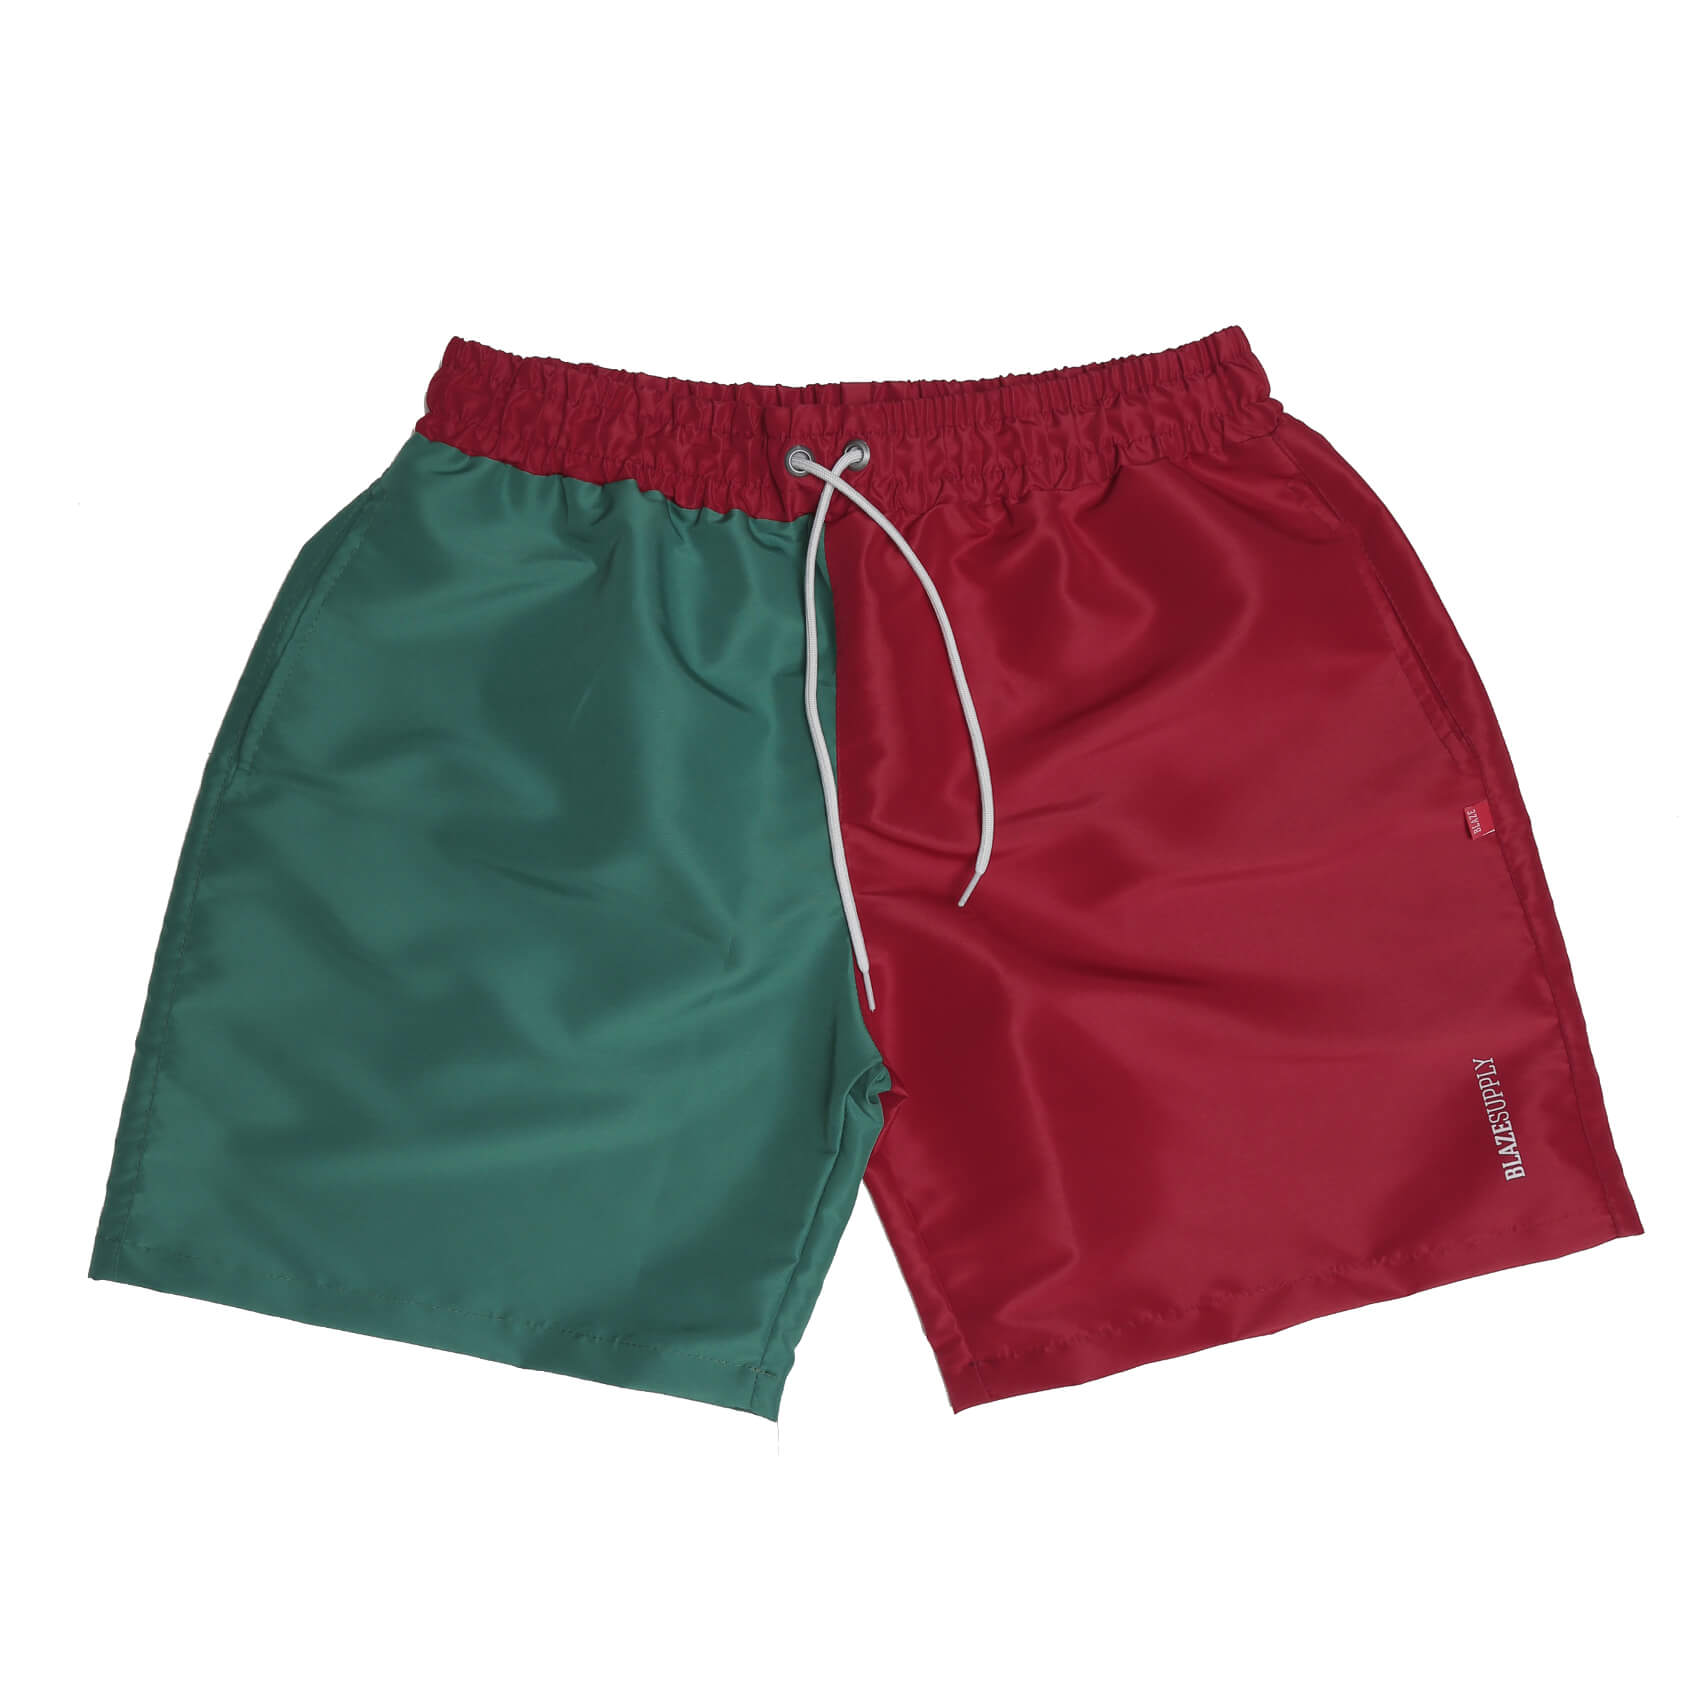 Shorts Script Bicolor Red/ Green Blaze Supply